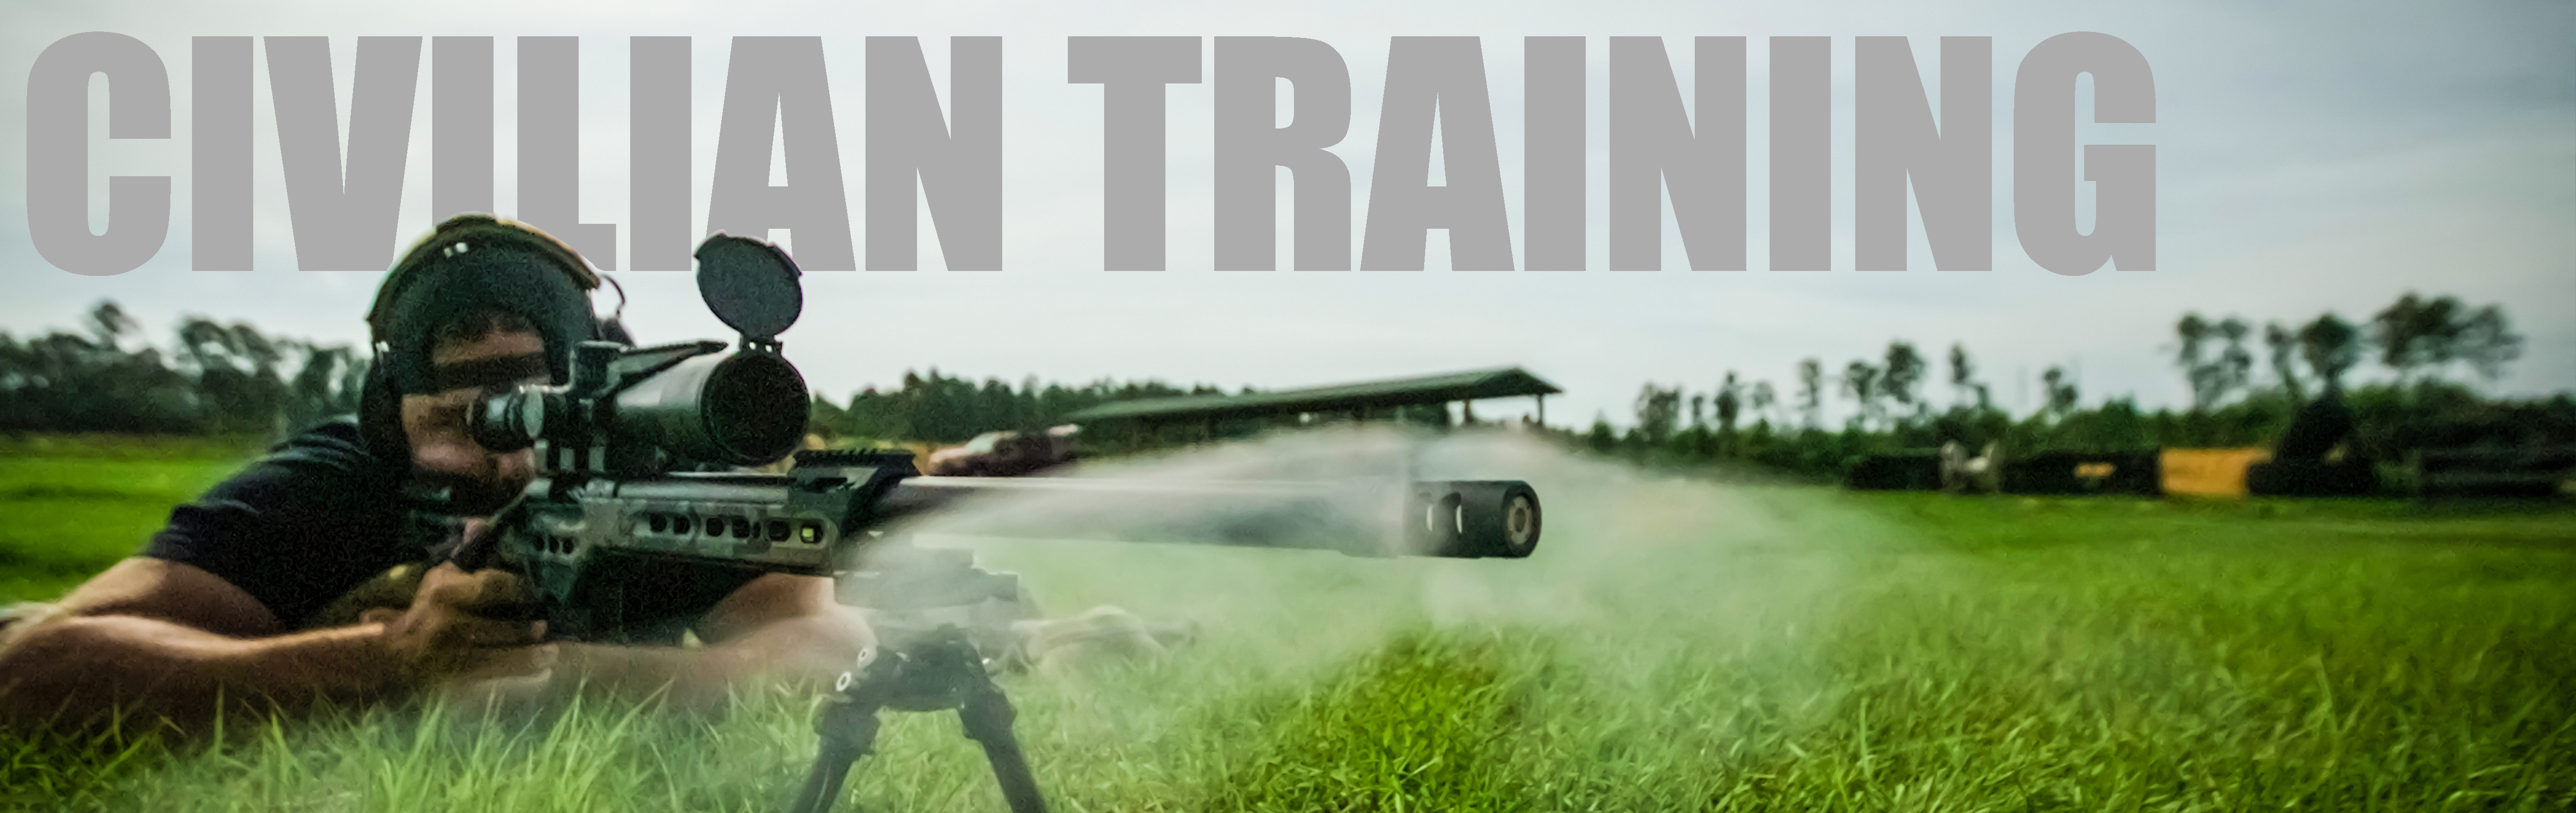 Civilian Training